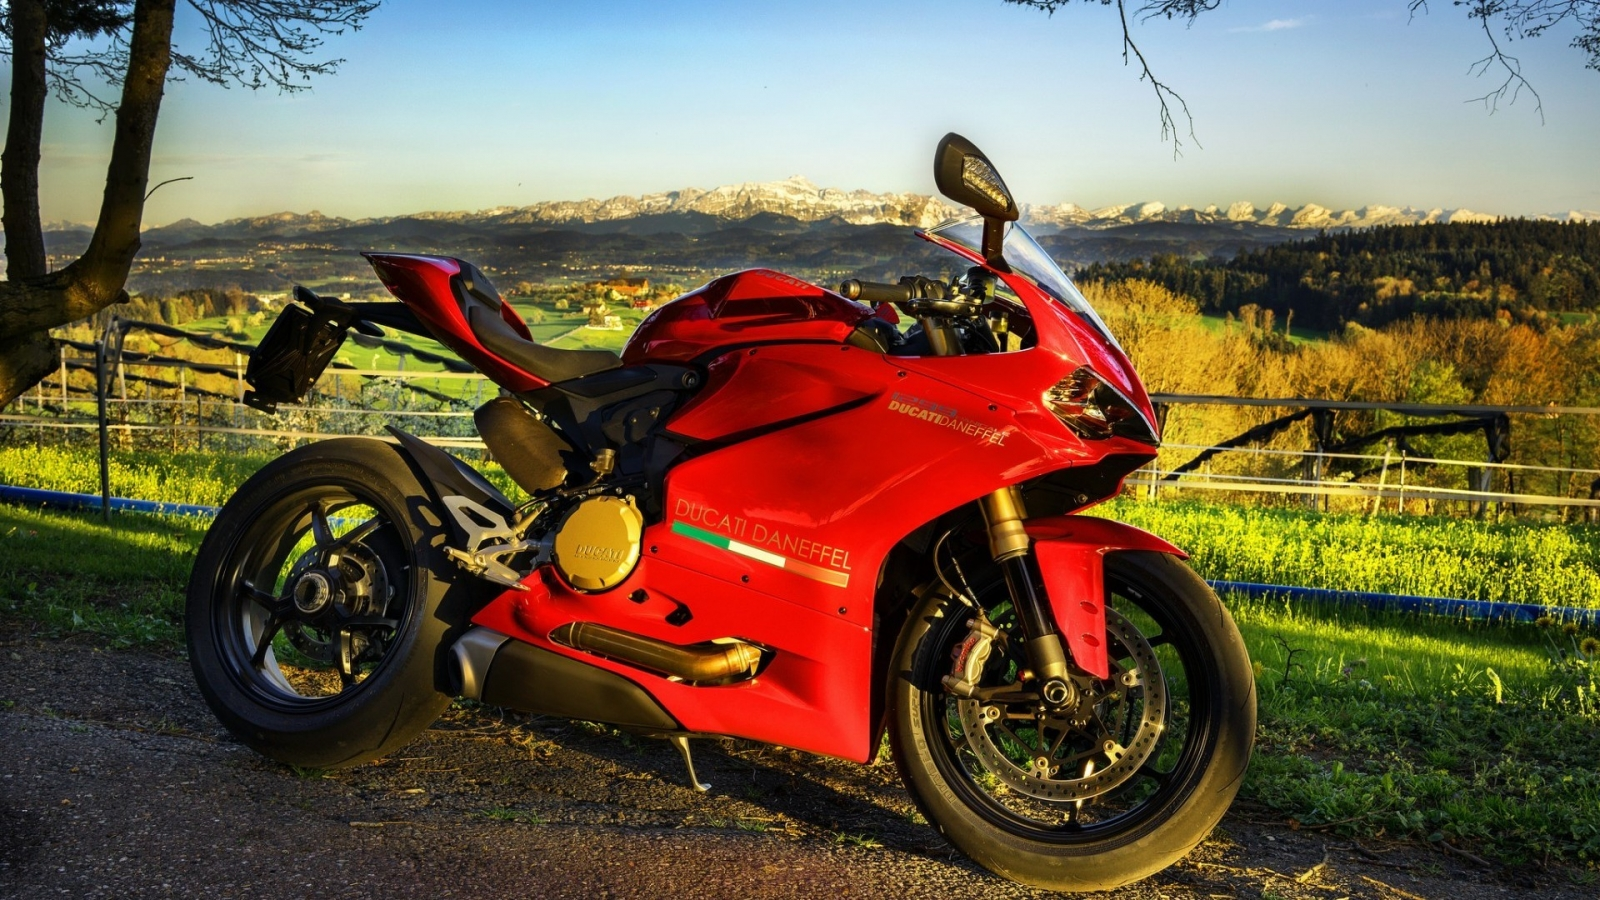 Stunning Red Ducati  for 1600 x 900 HDTV resolution